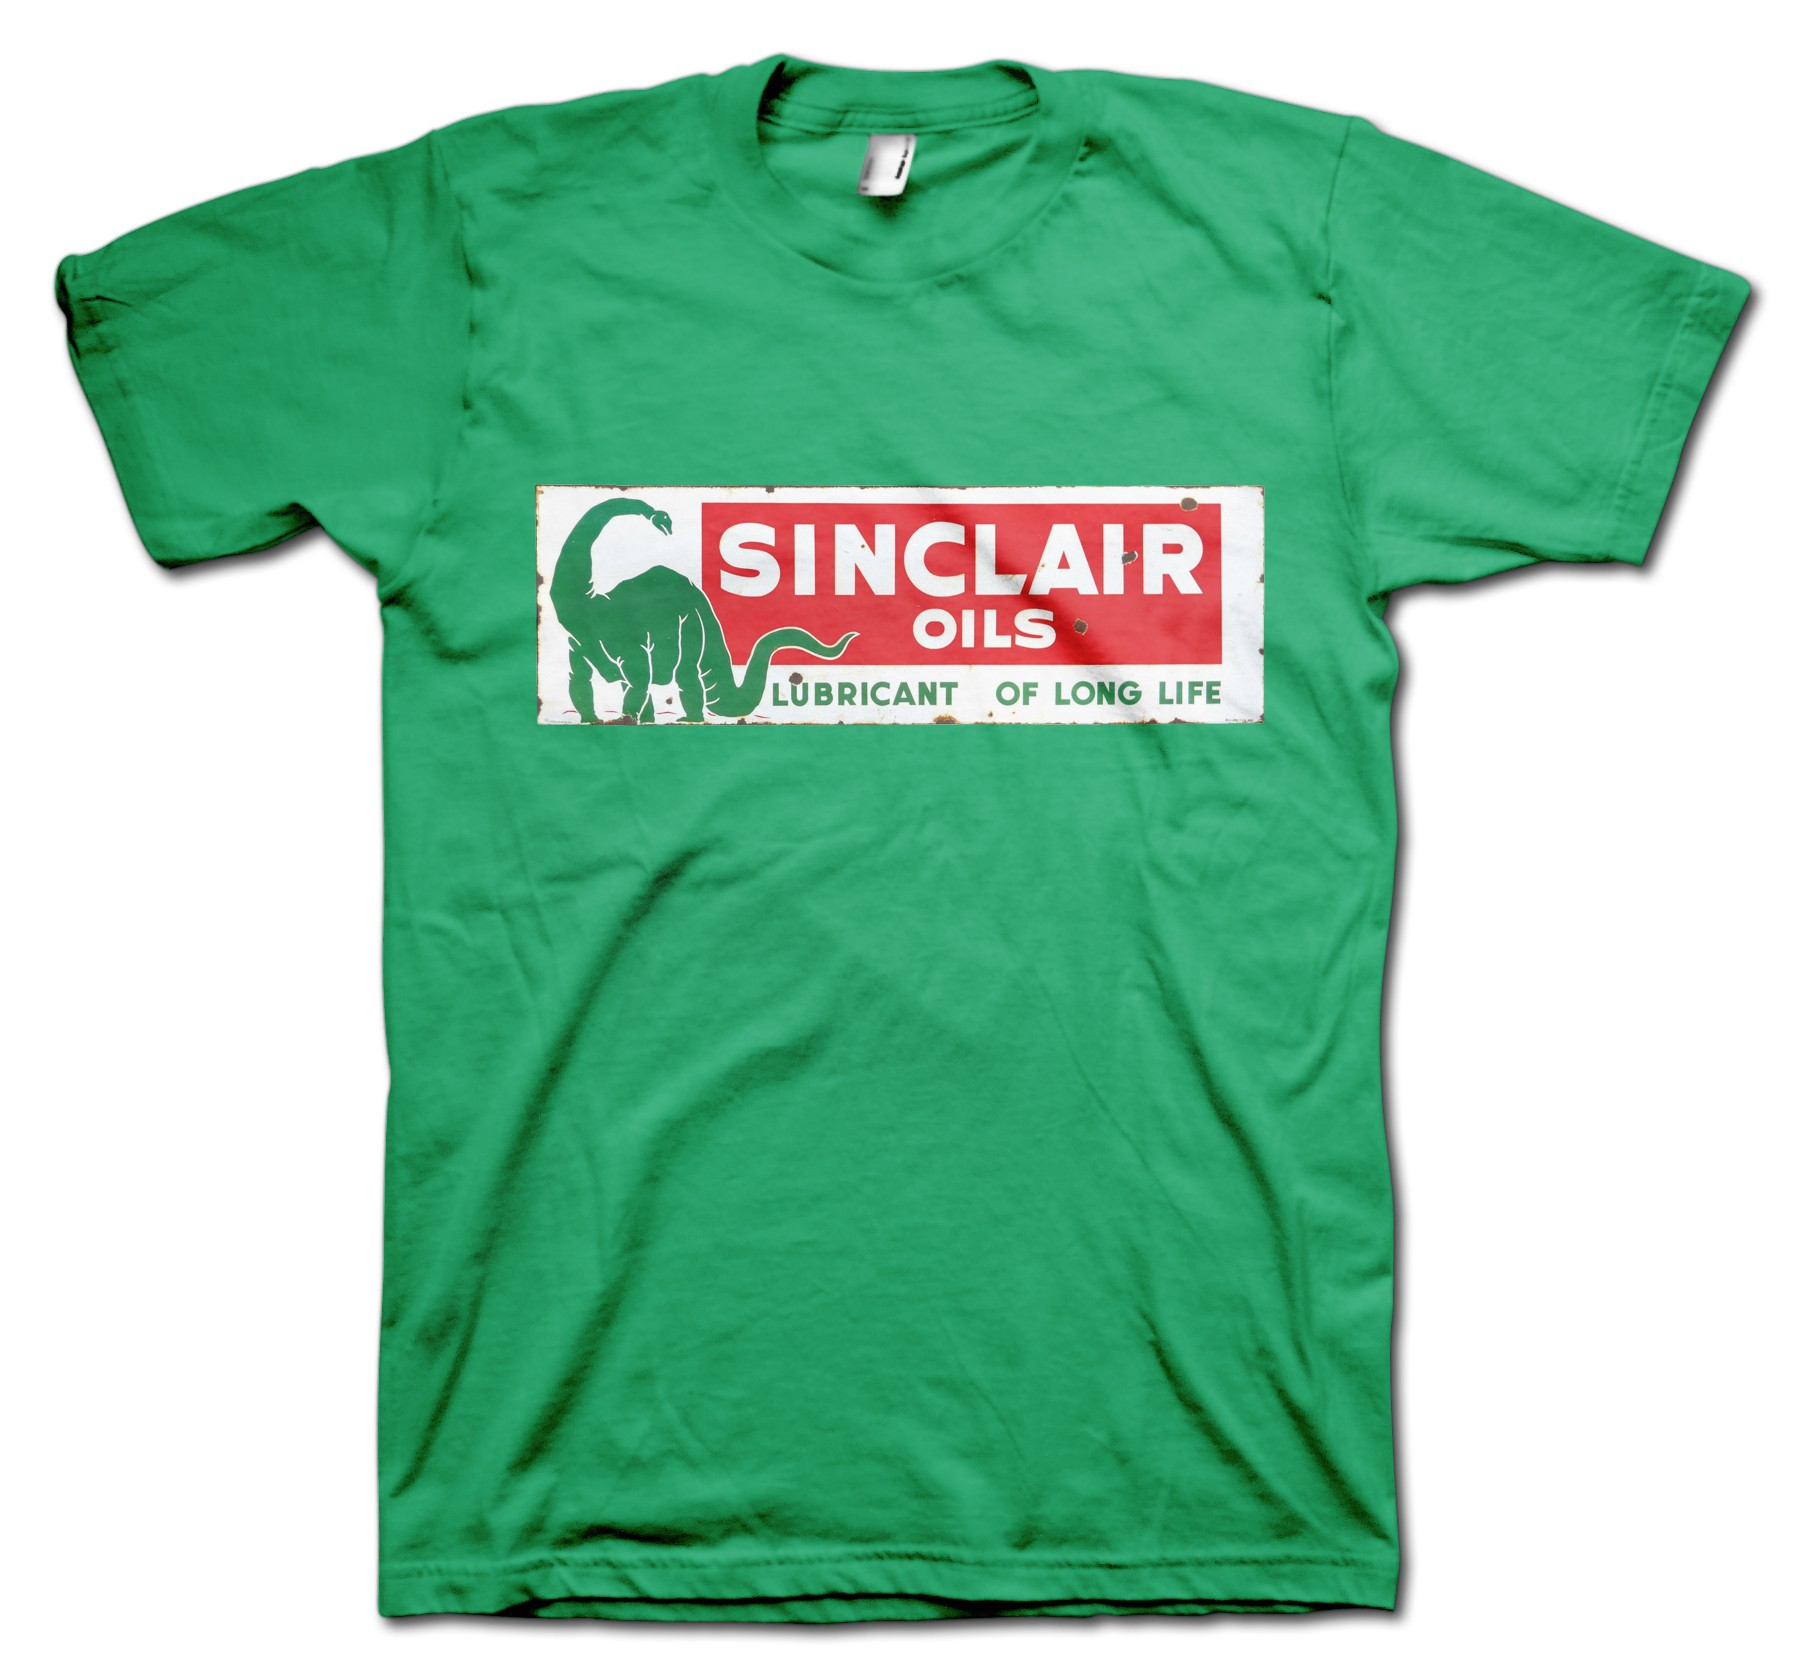 Sinclair Lubricant Oils Retro T-Shirt